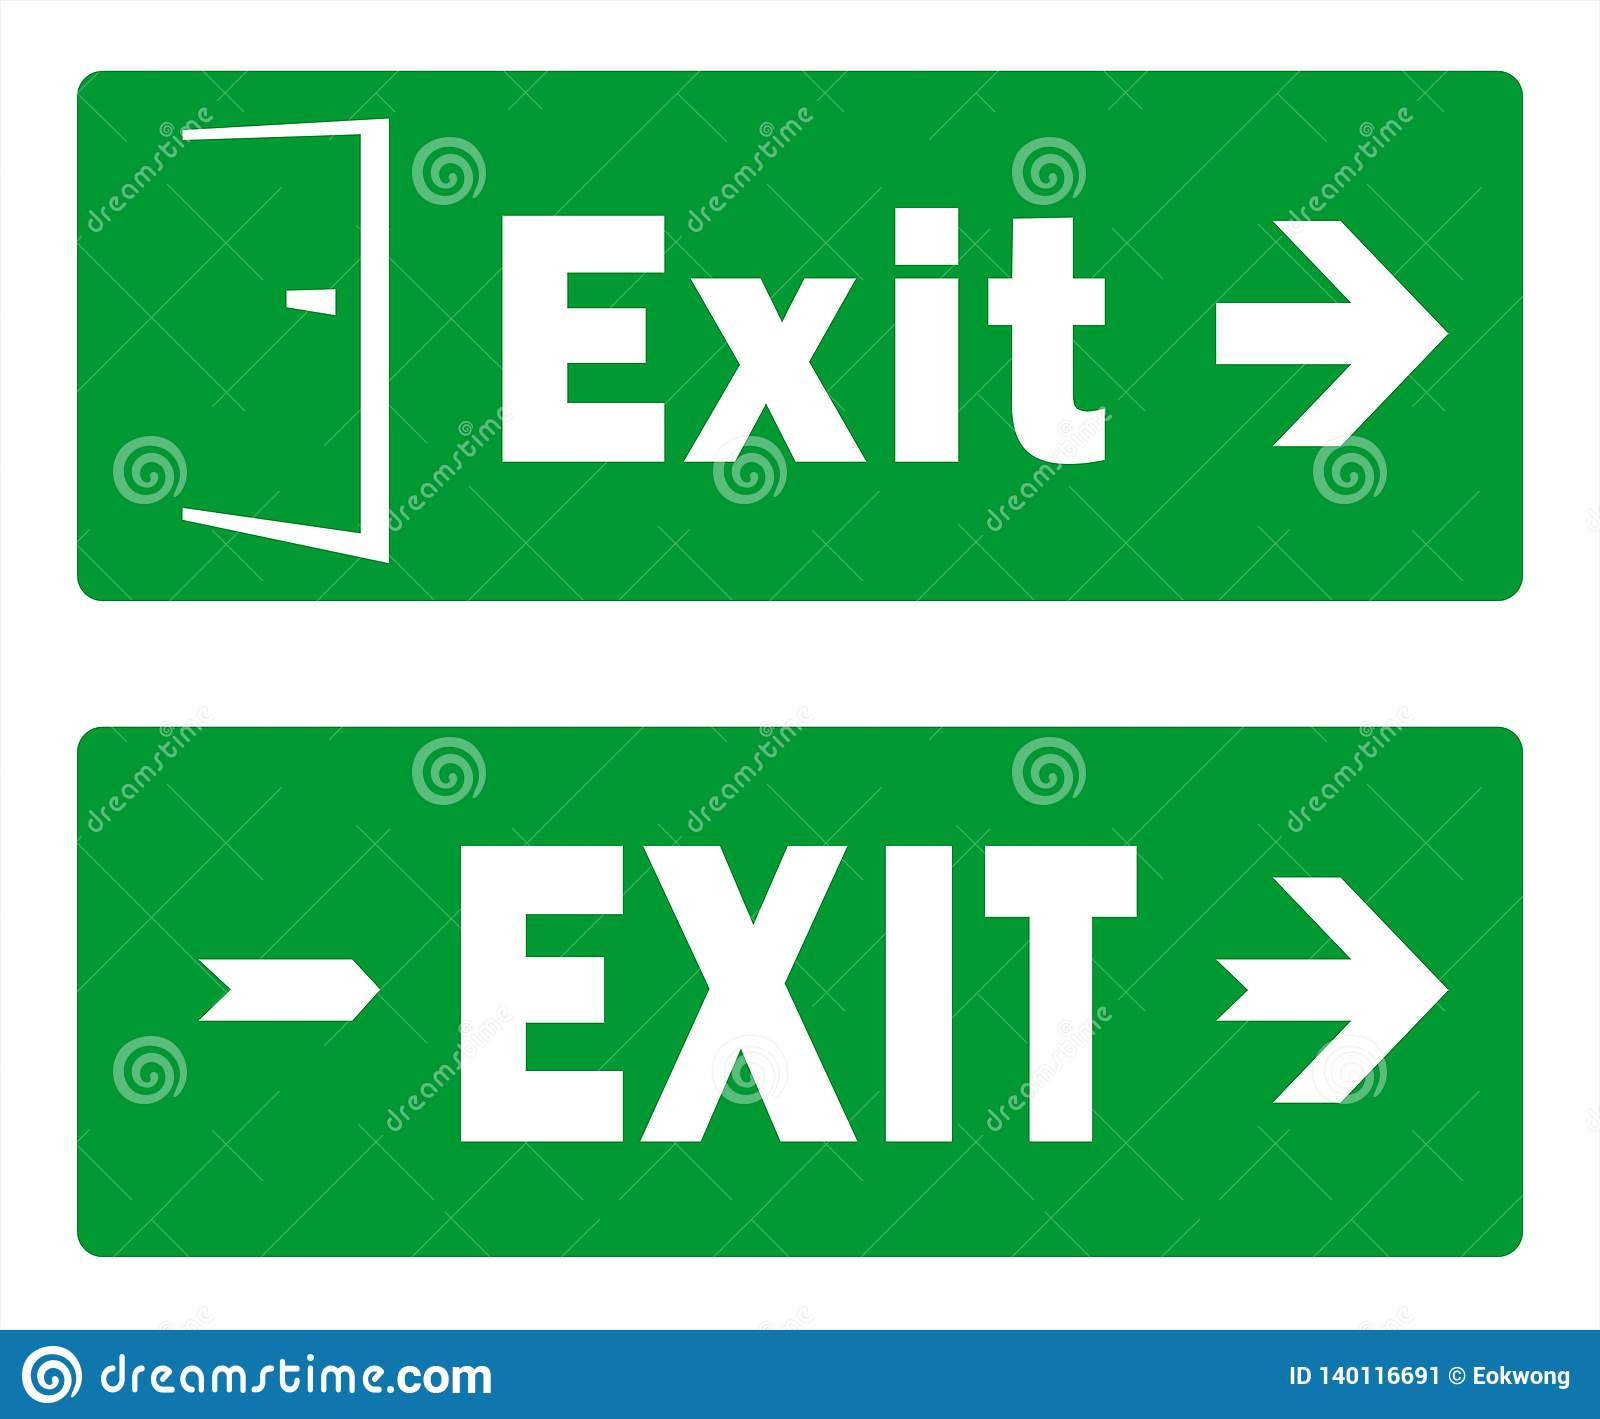 image relating to Printable Exit Signs titled Inexperienced Exit Signal Template Programs - Crisis Exit - Pack Of